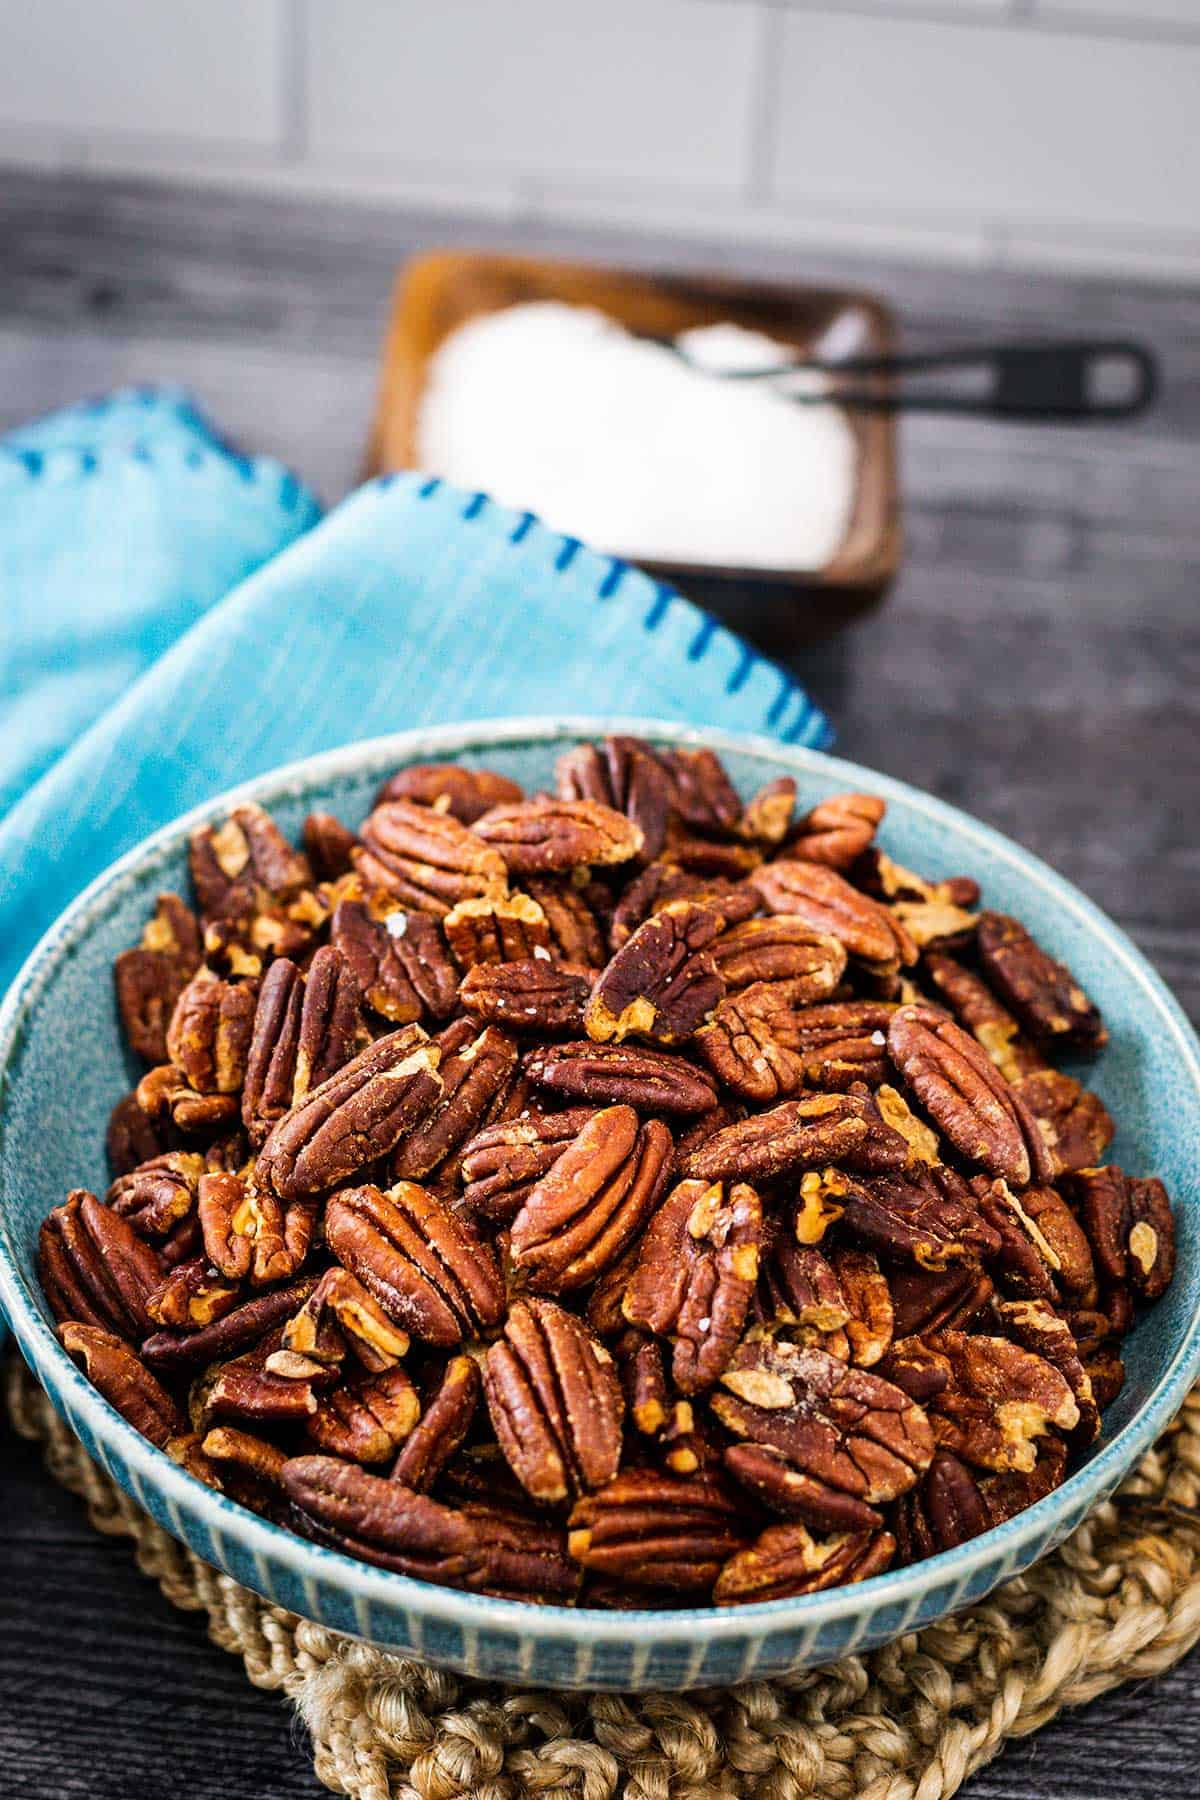 Bowl of toasted pecans sprinkled with sea salt in a blue bowl set on a wooden table.